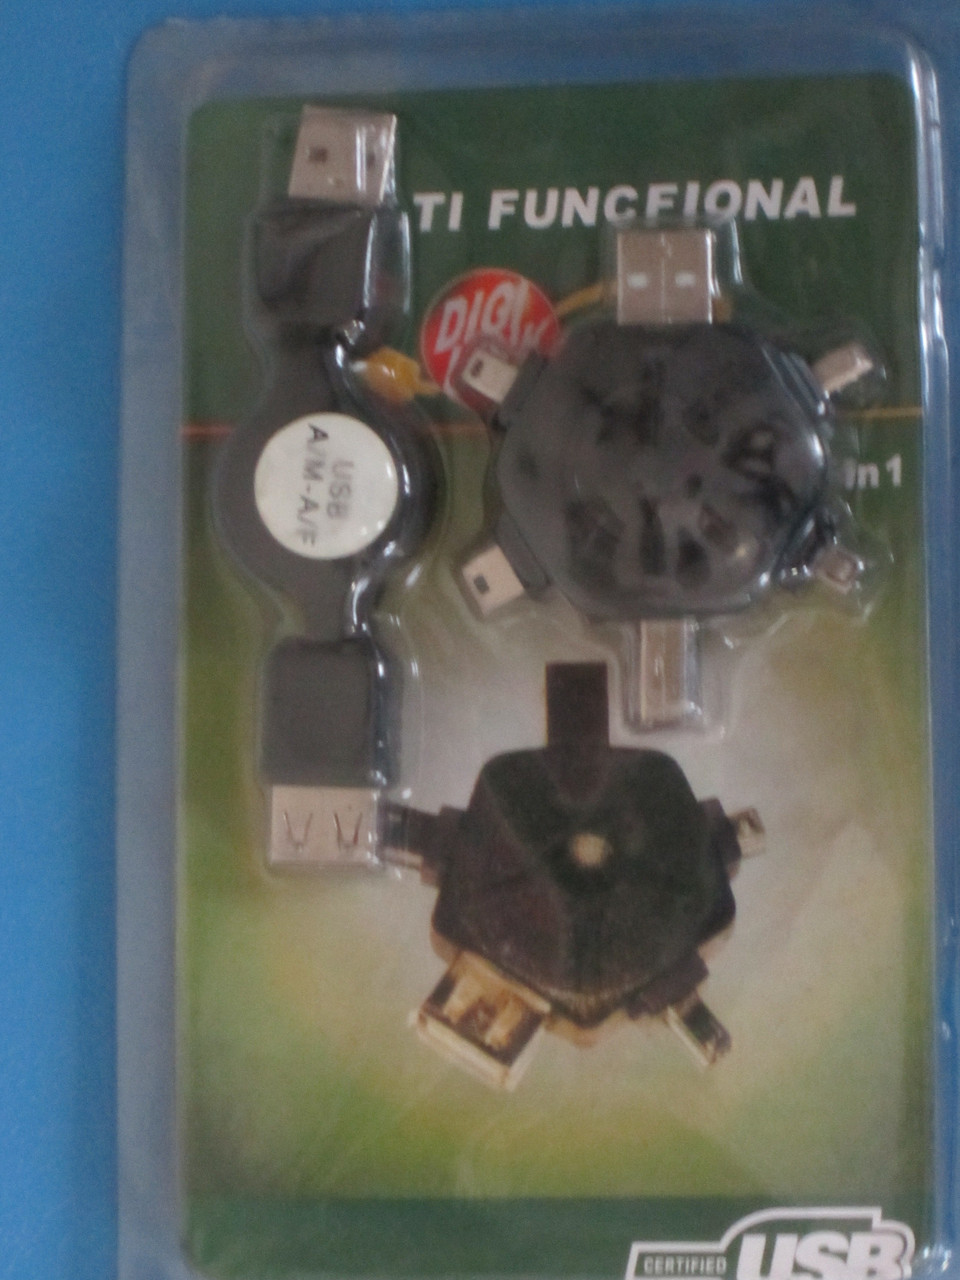 Multi-functional USB переходник